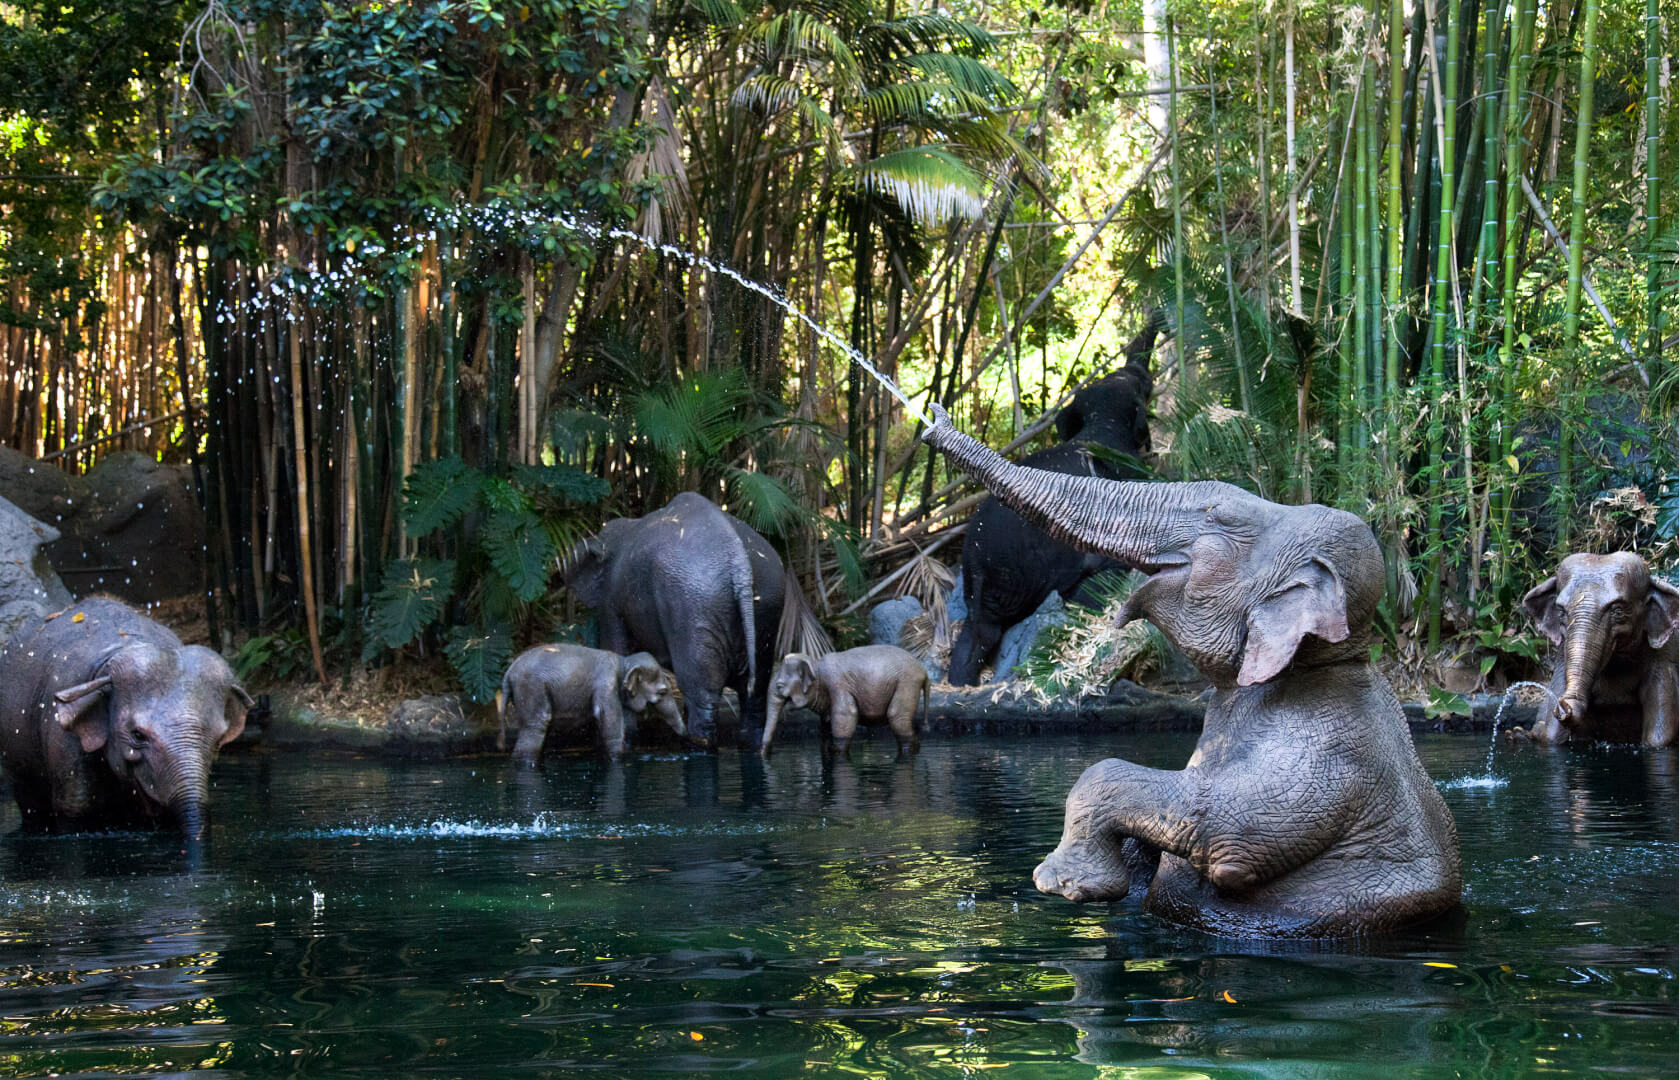 Top Disneyland Attractions The Jungle Cruise